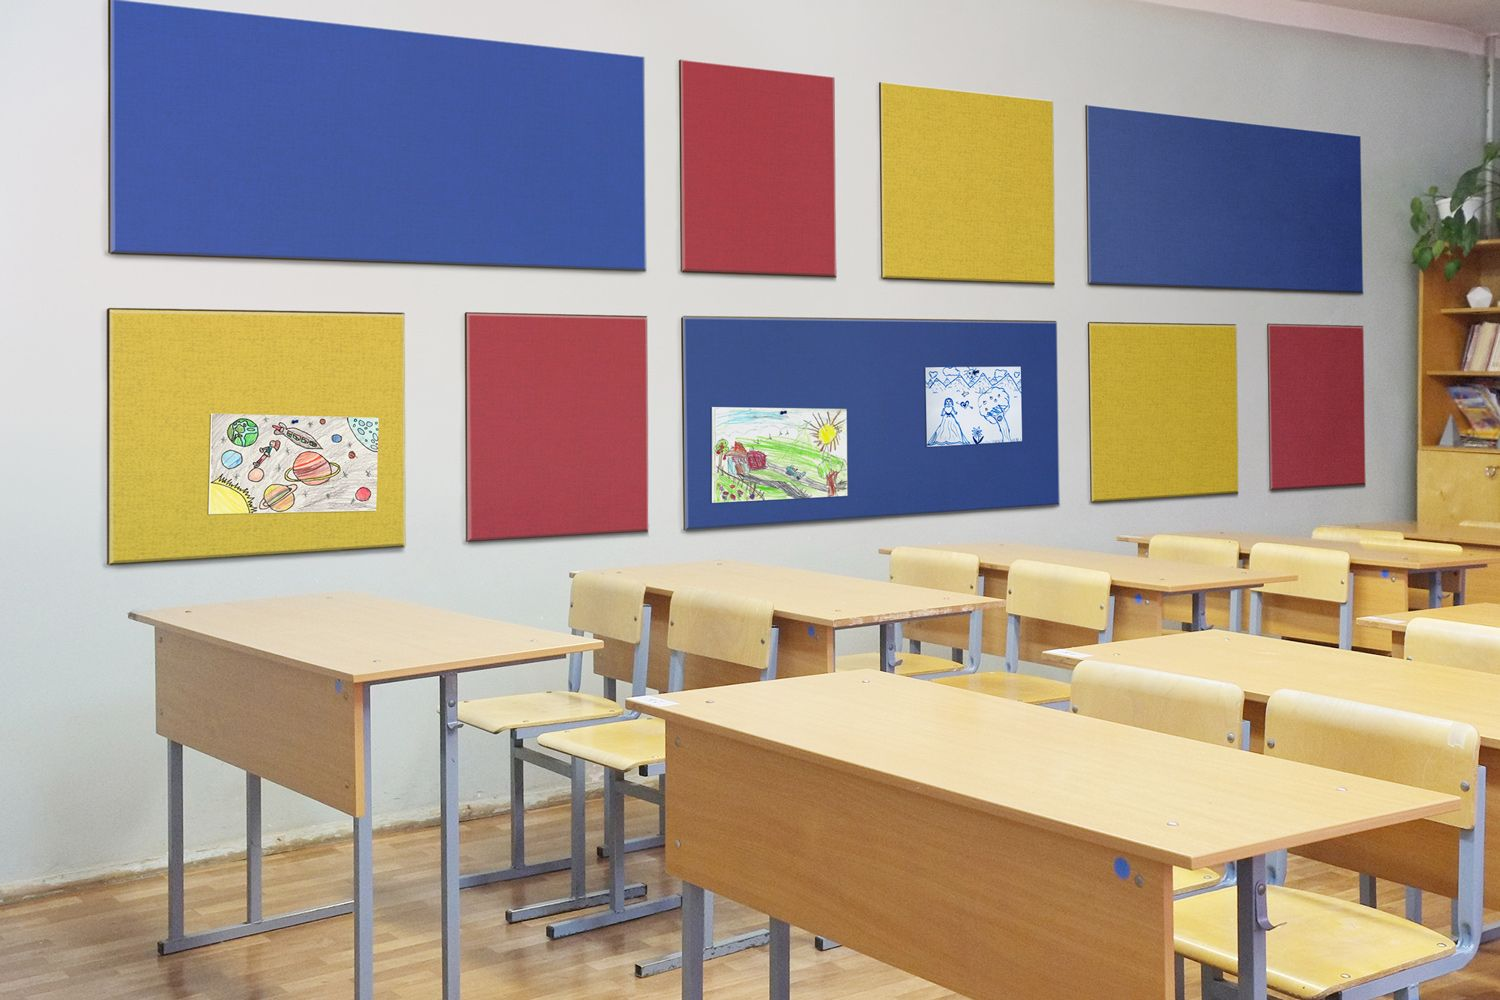 classroom with colorful panels